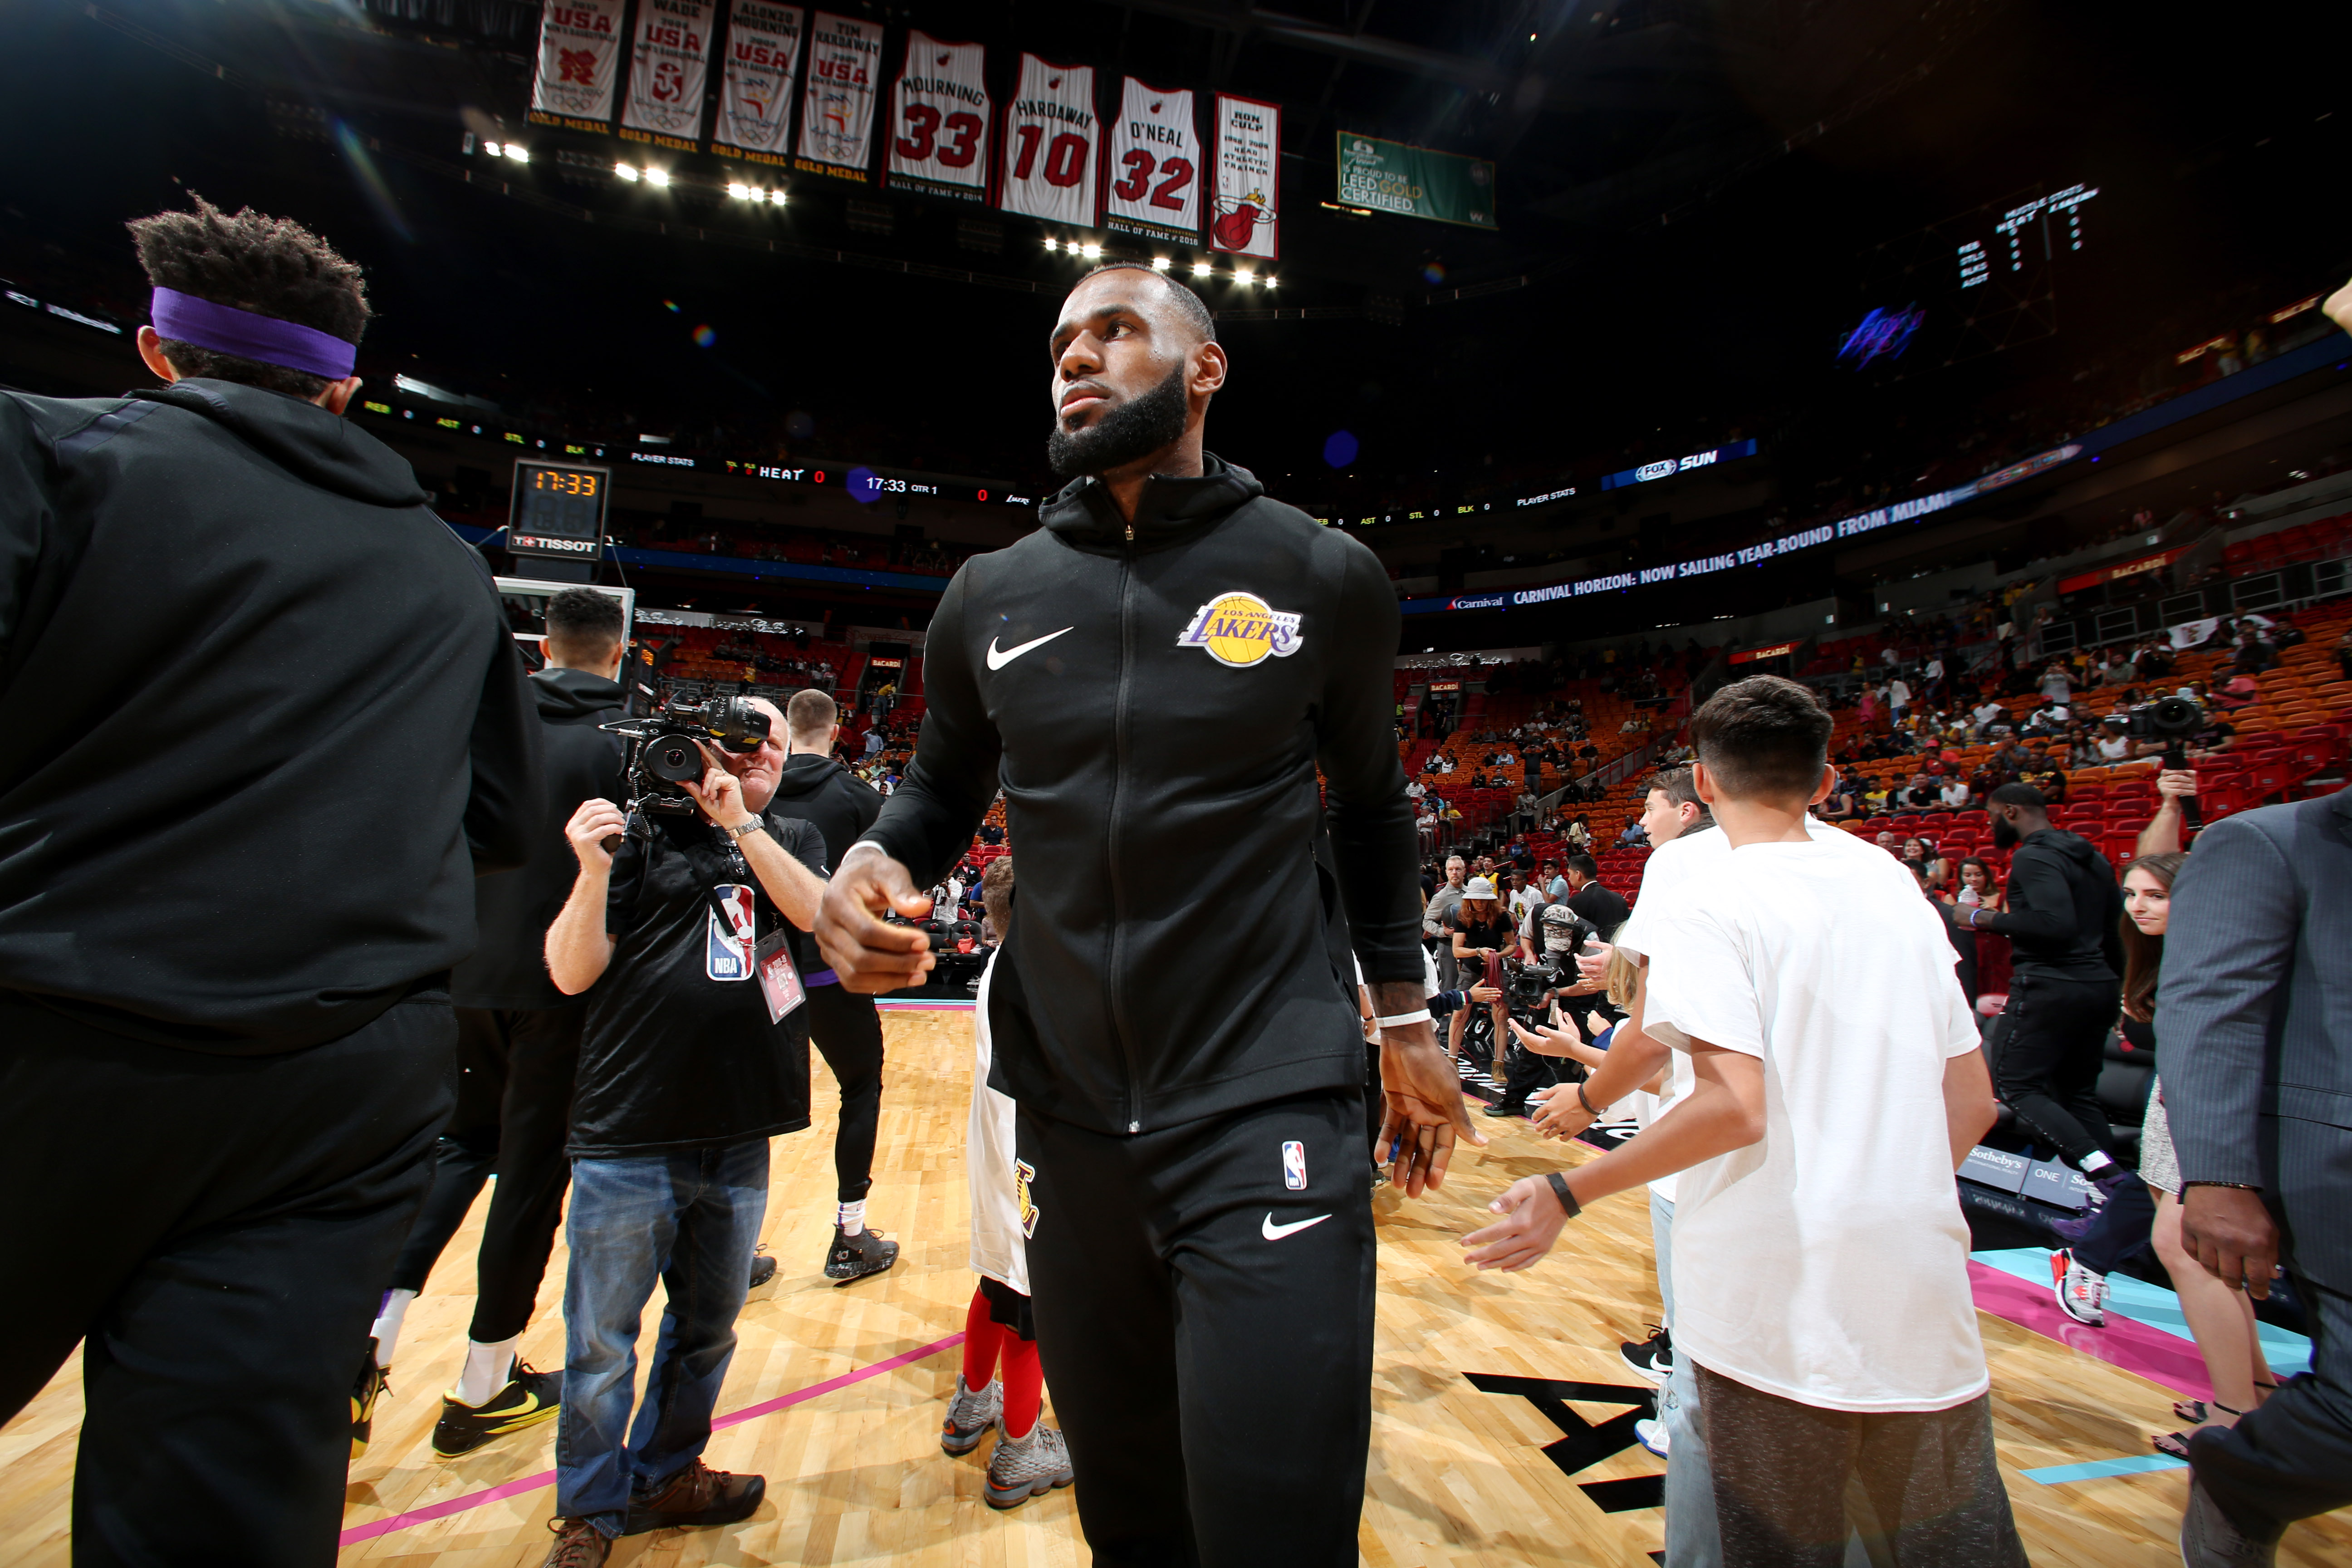 68deaa4dd56 LeBron James  return to Cleveland highlights new era of former player  tributes